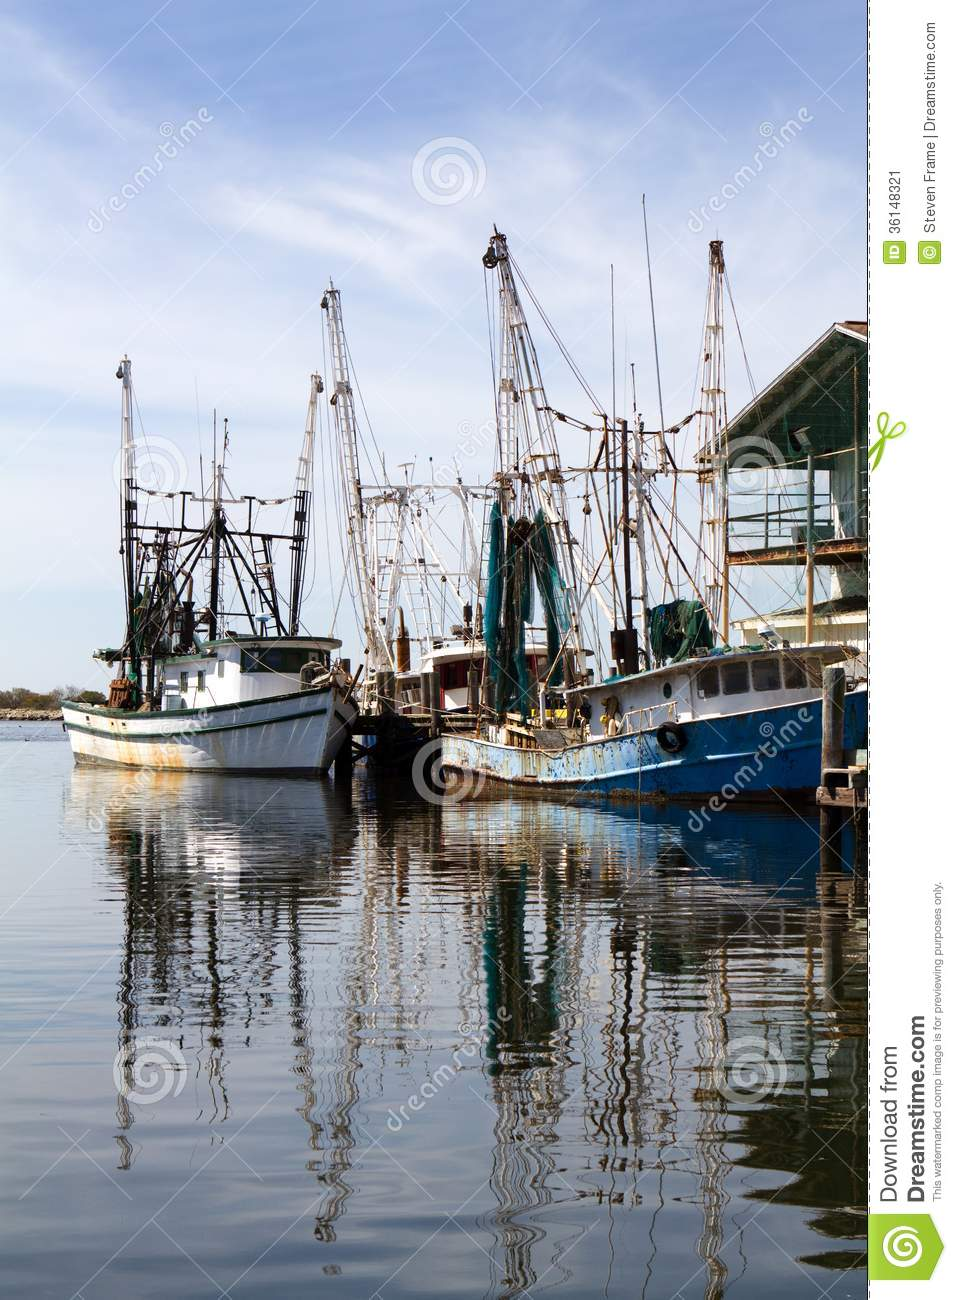 Shrimp Boat Clip Art Docked shrimp boats